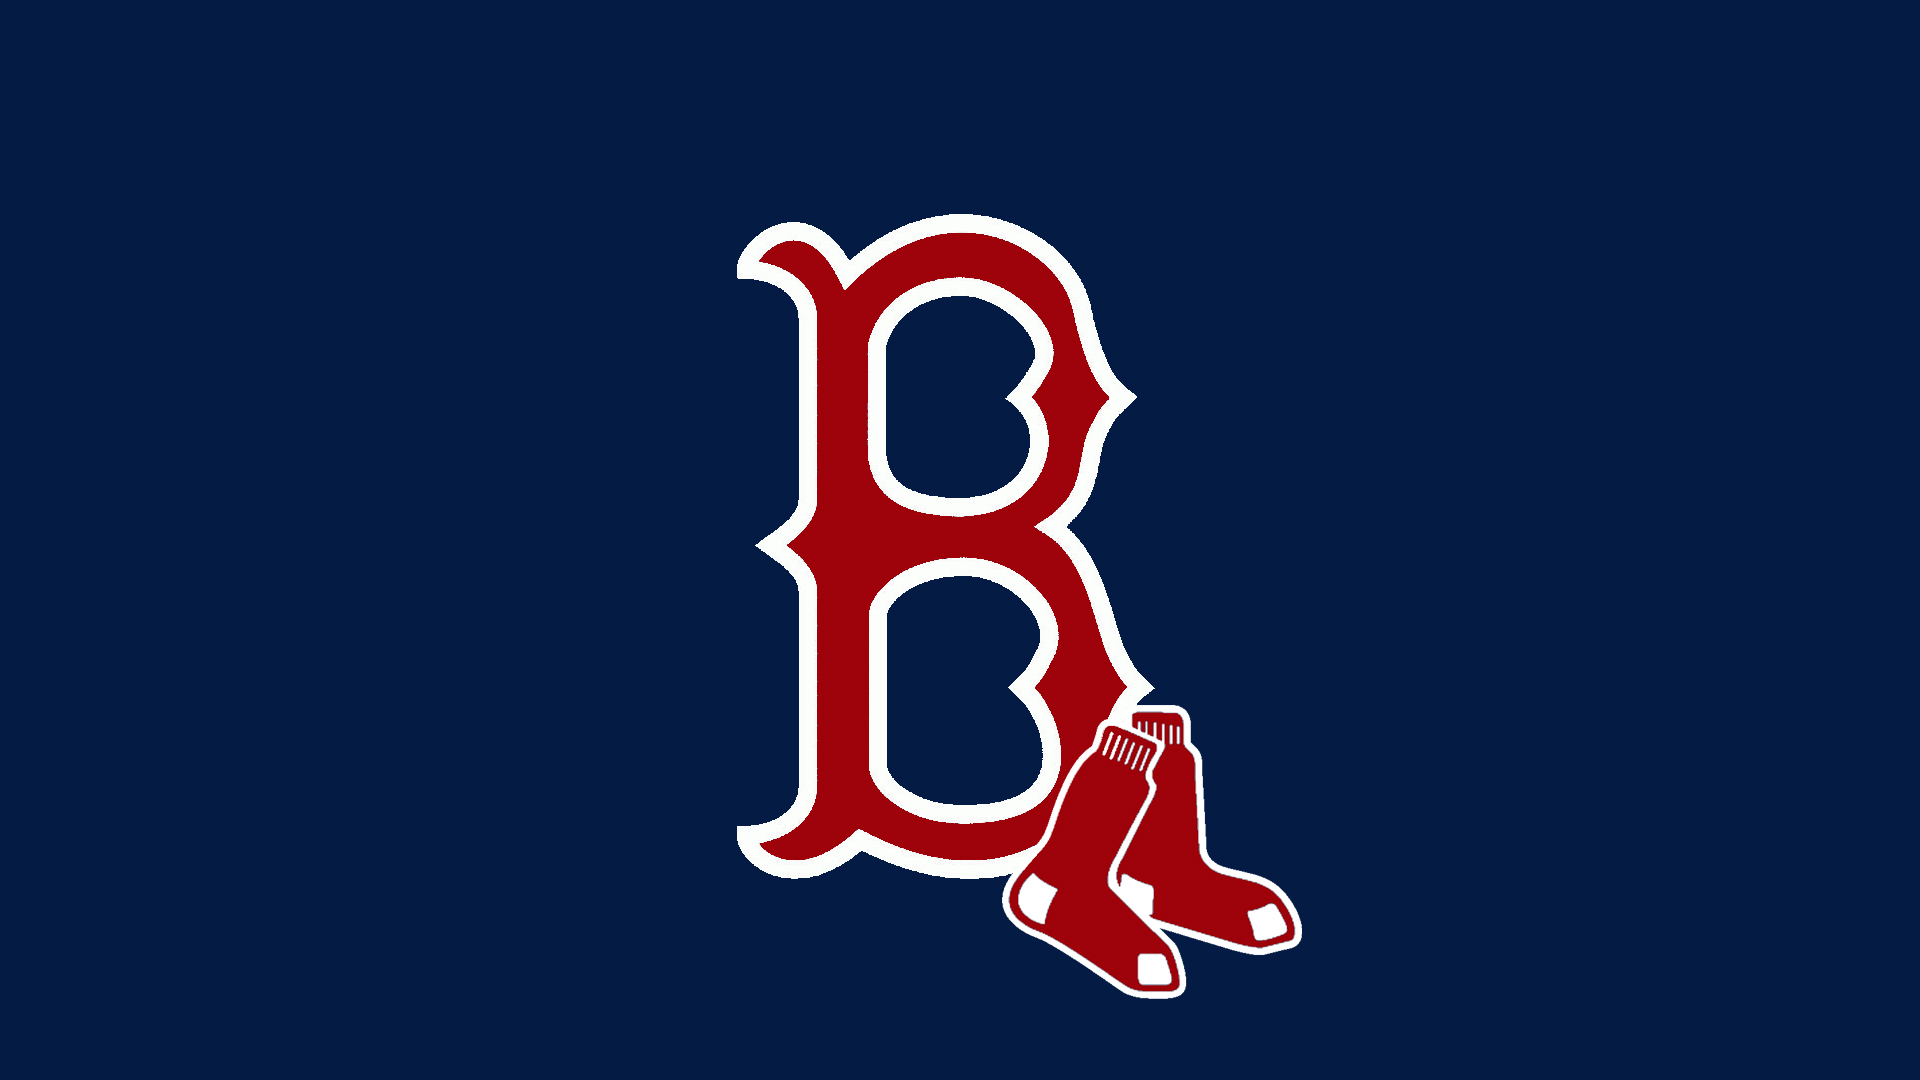 Boston Red Sox Red Sox Red Sox Wallpaper 1920x1080 - Boston Red Sox Wallpaper (8502641